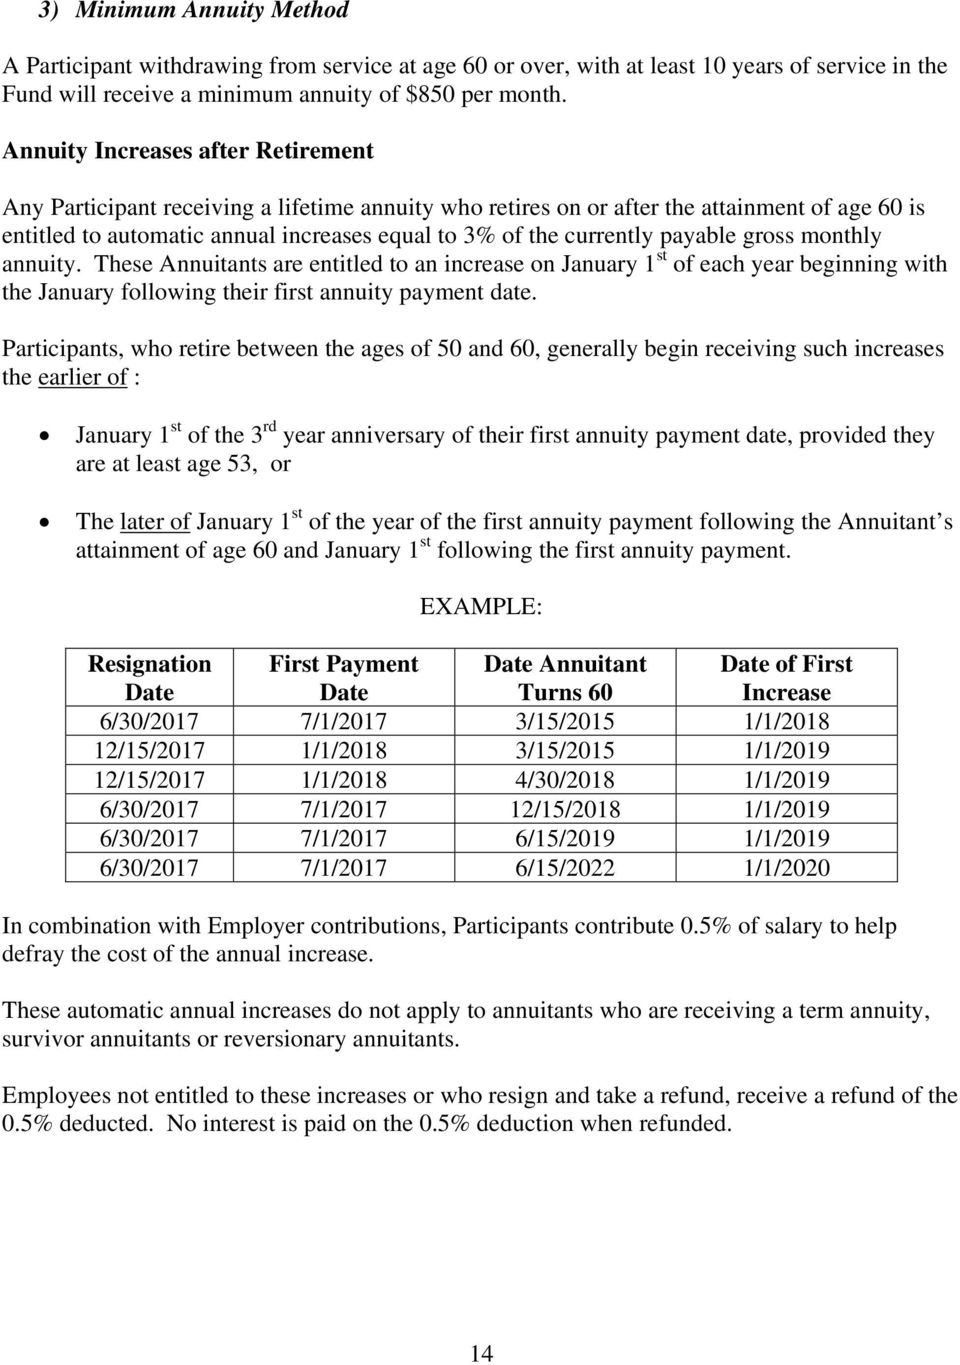 payable gross monthly annuity. These Annuitants are entitled to an increase on January 1 st of each year beginning with the January following their first annuity payment date.